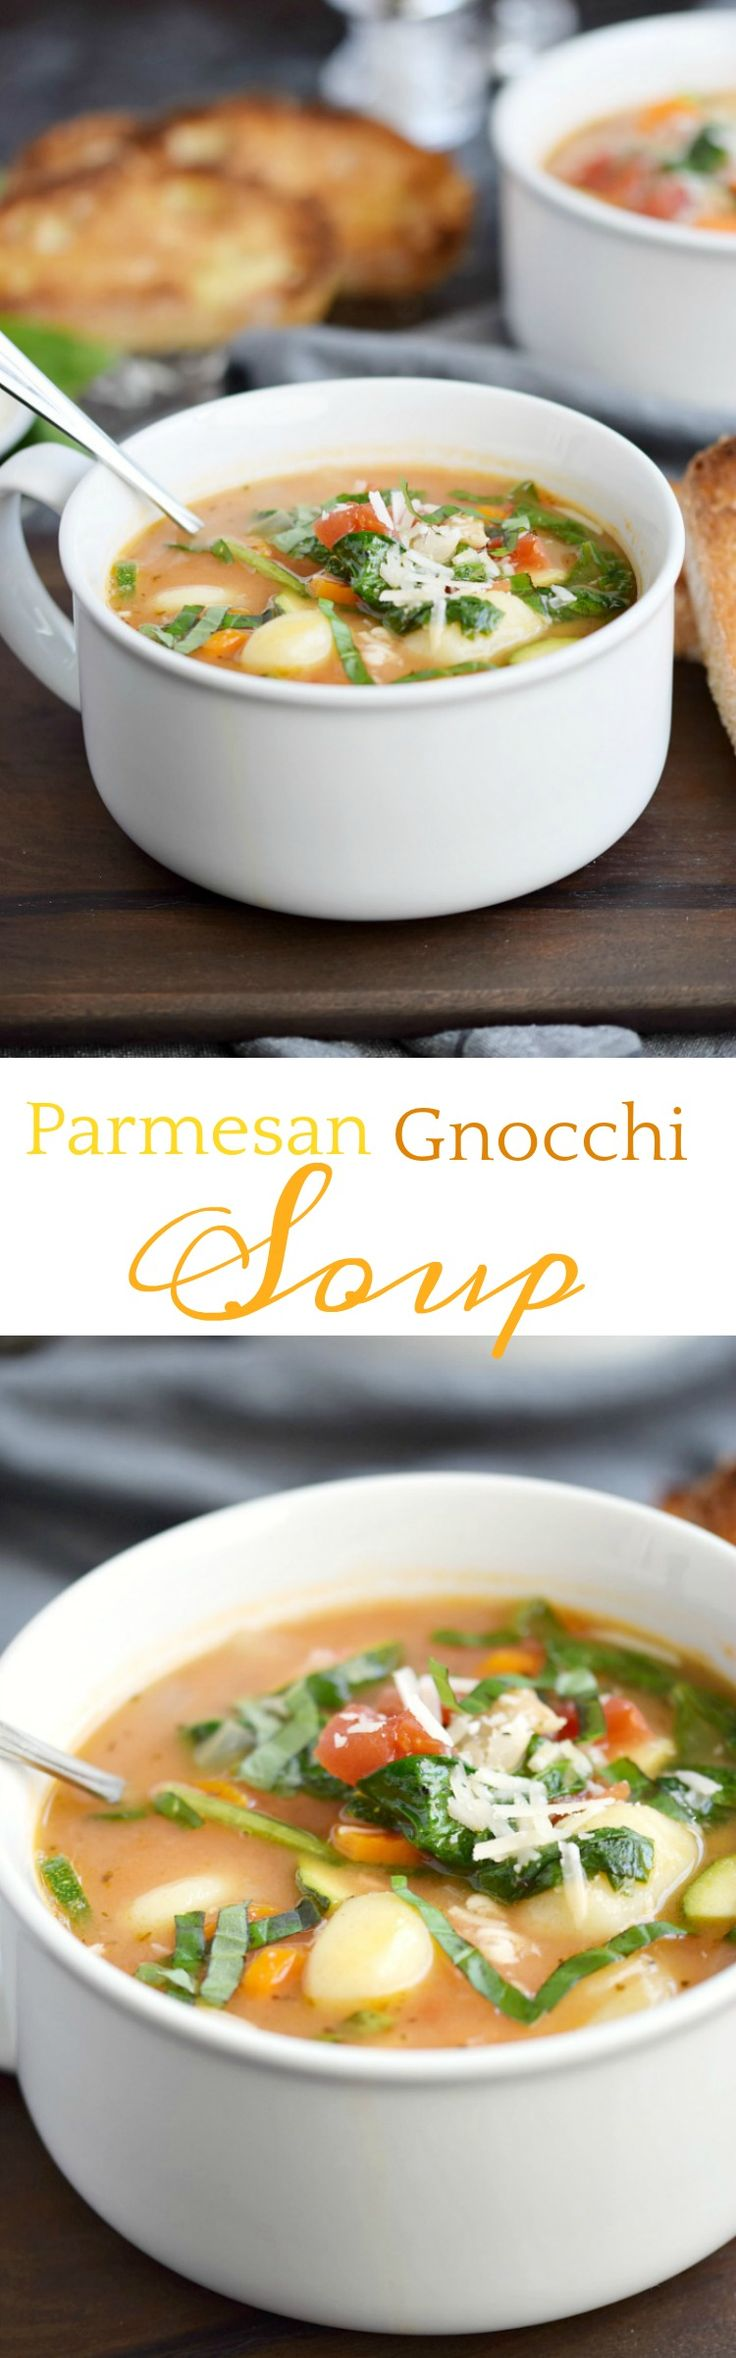 Parmesan Gnocchi Soup flavored with the rind from Parmesan cheese and loaded with vegetables for a healthy and delicious meal the whole family will love! COPYRIGHT © 2017 COOKING WITH CURLS